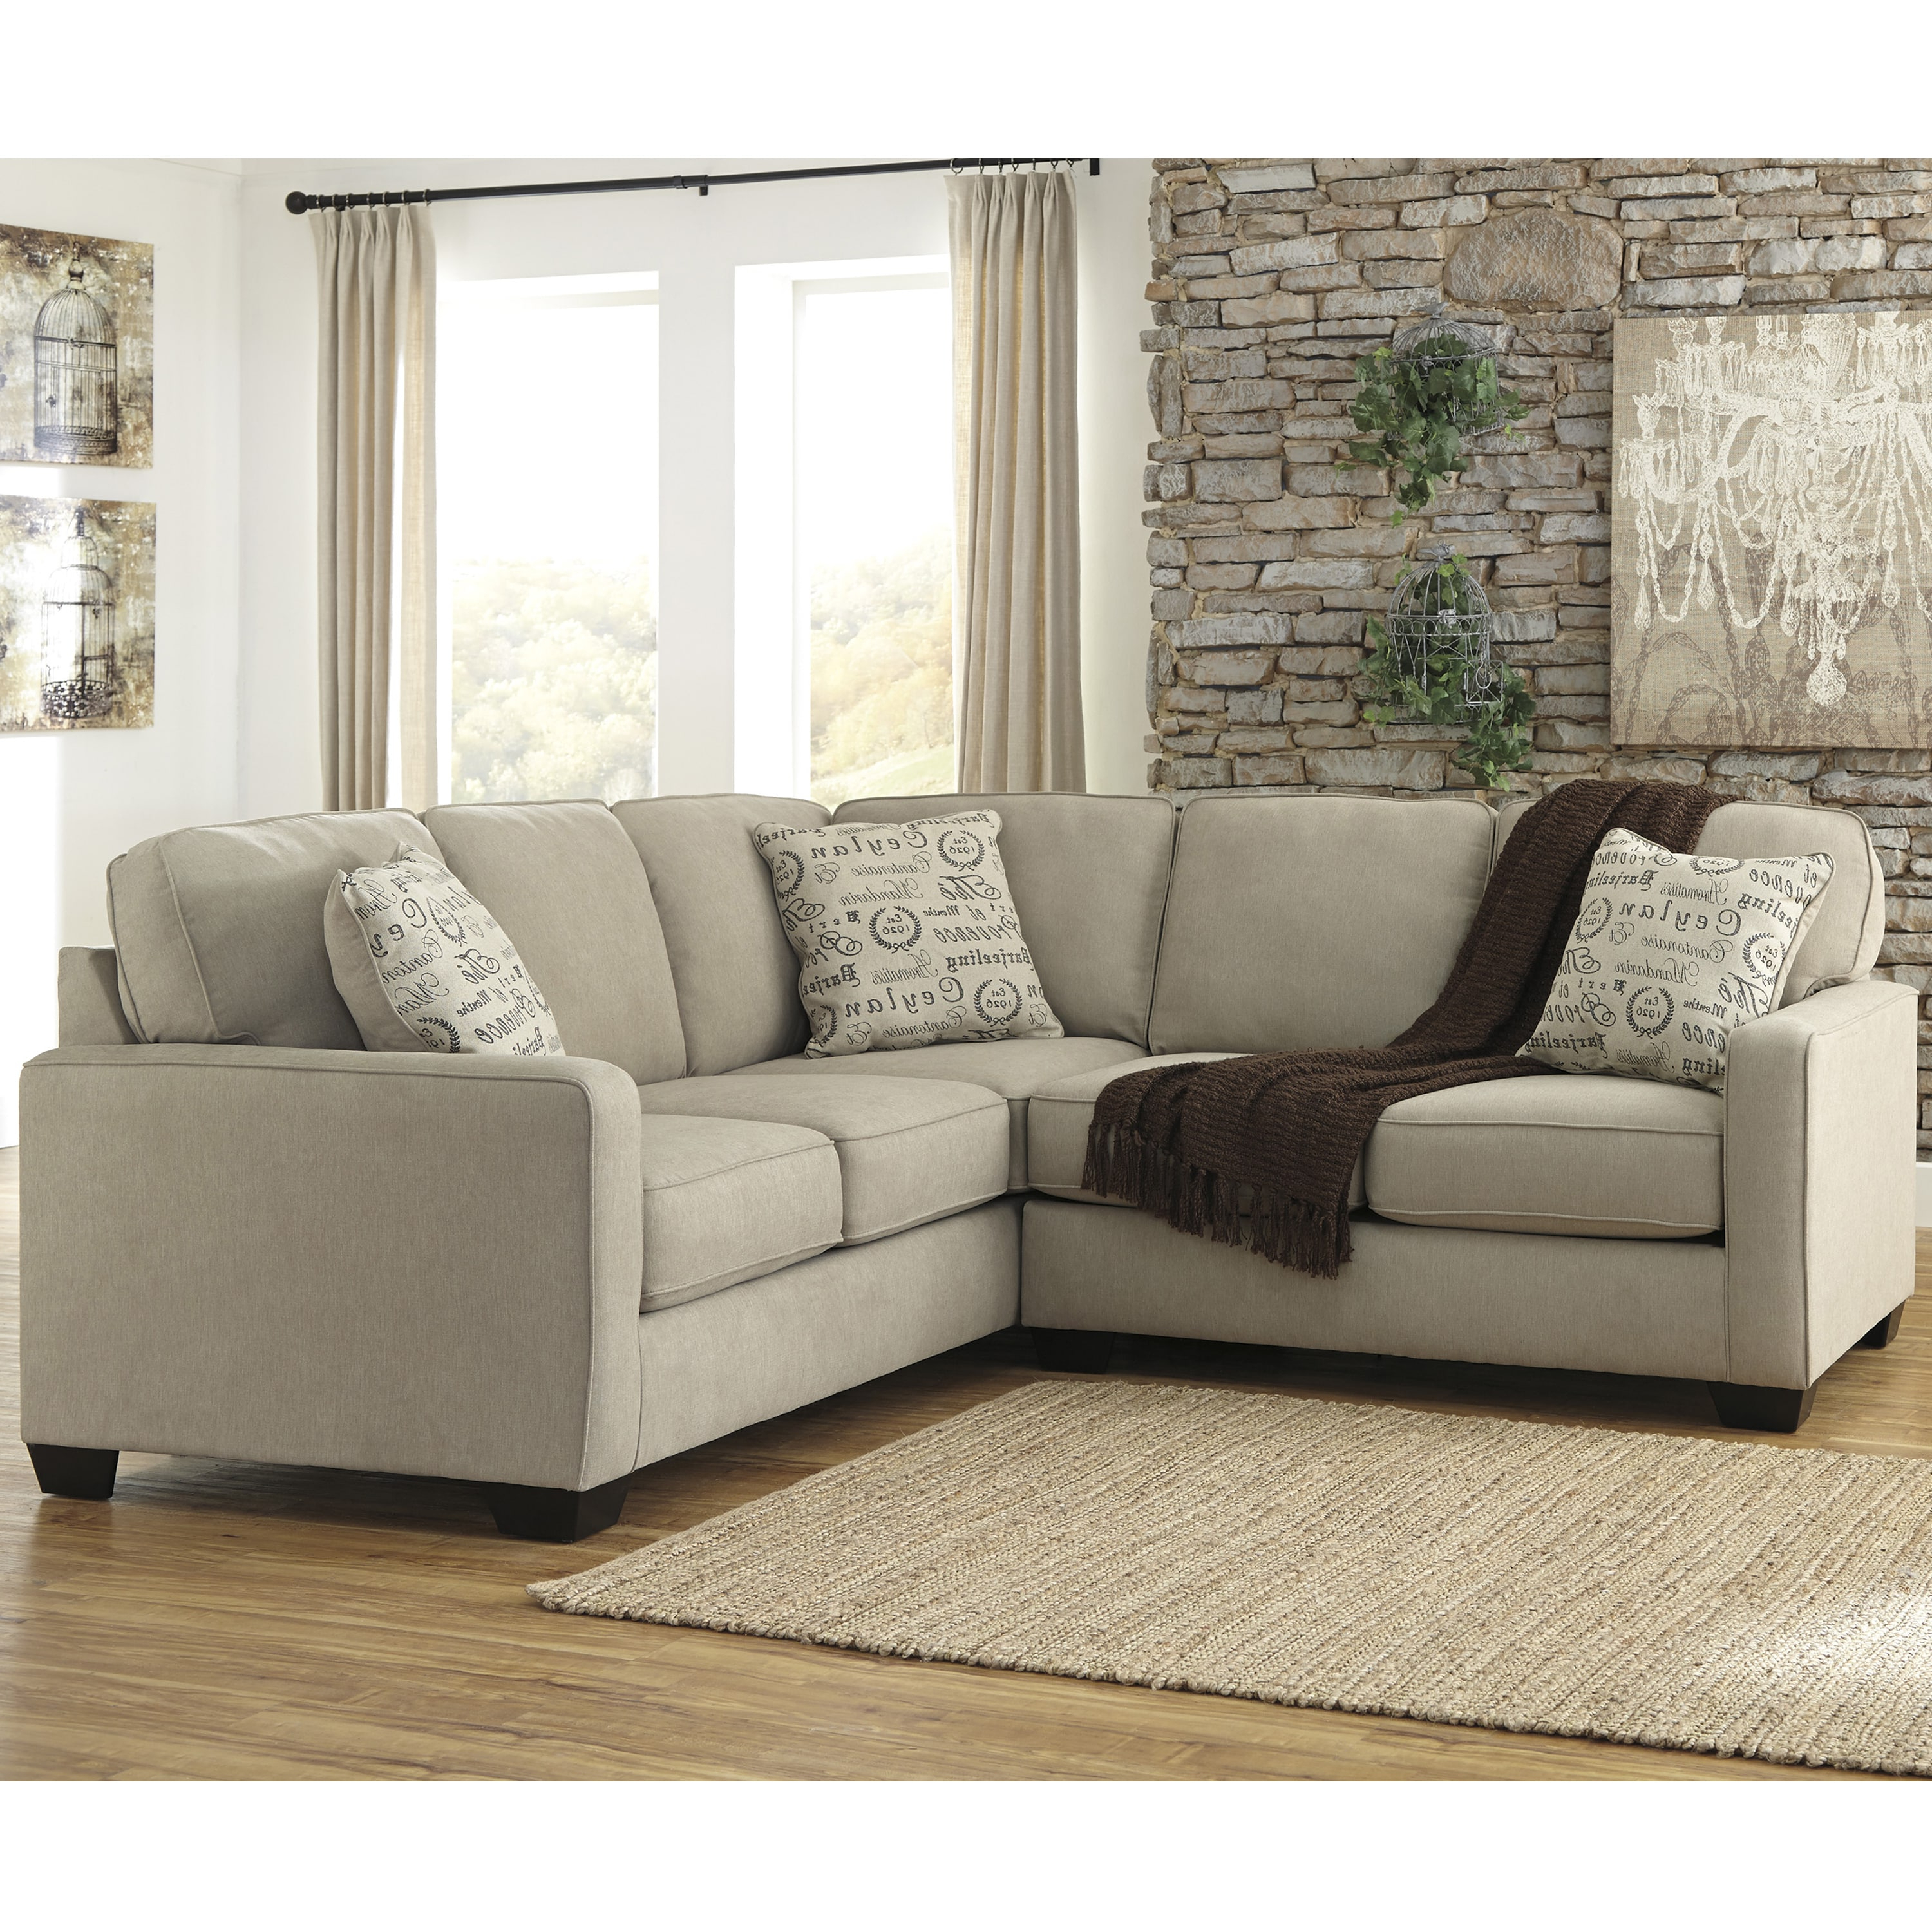 Patola Park Patina Large Sectional W/ Chaise Inside Popular Elm Grande Ii 2 Piece Sectionals (View 13 of 20)